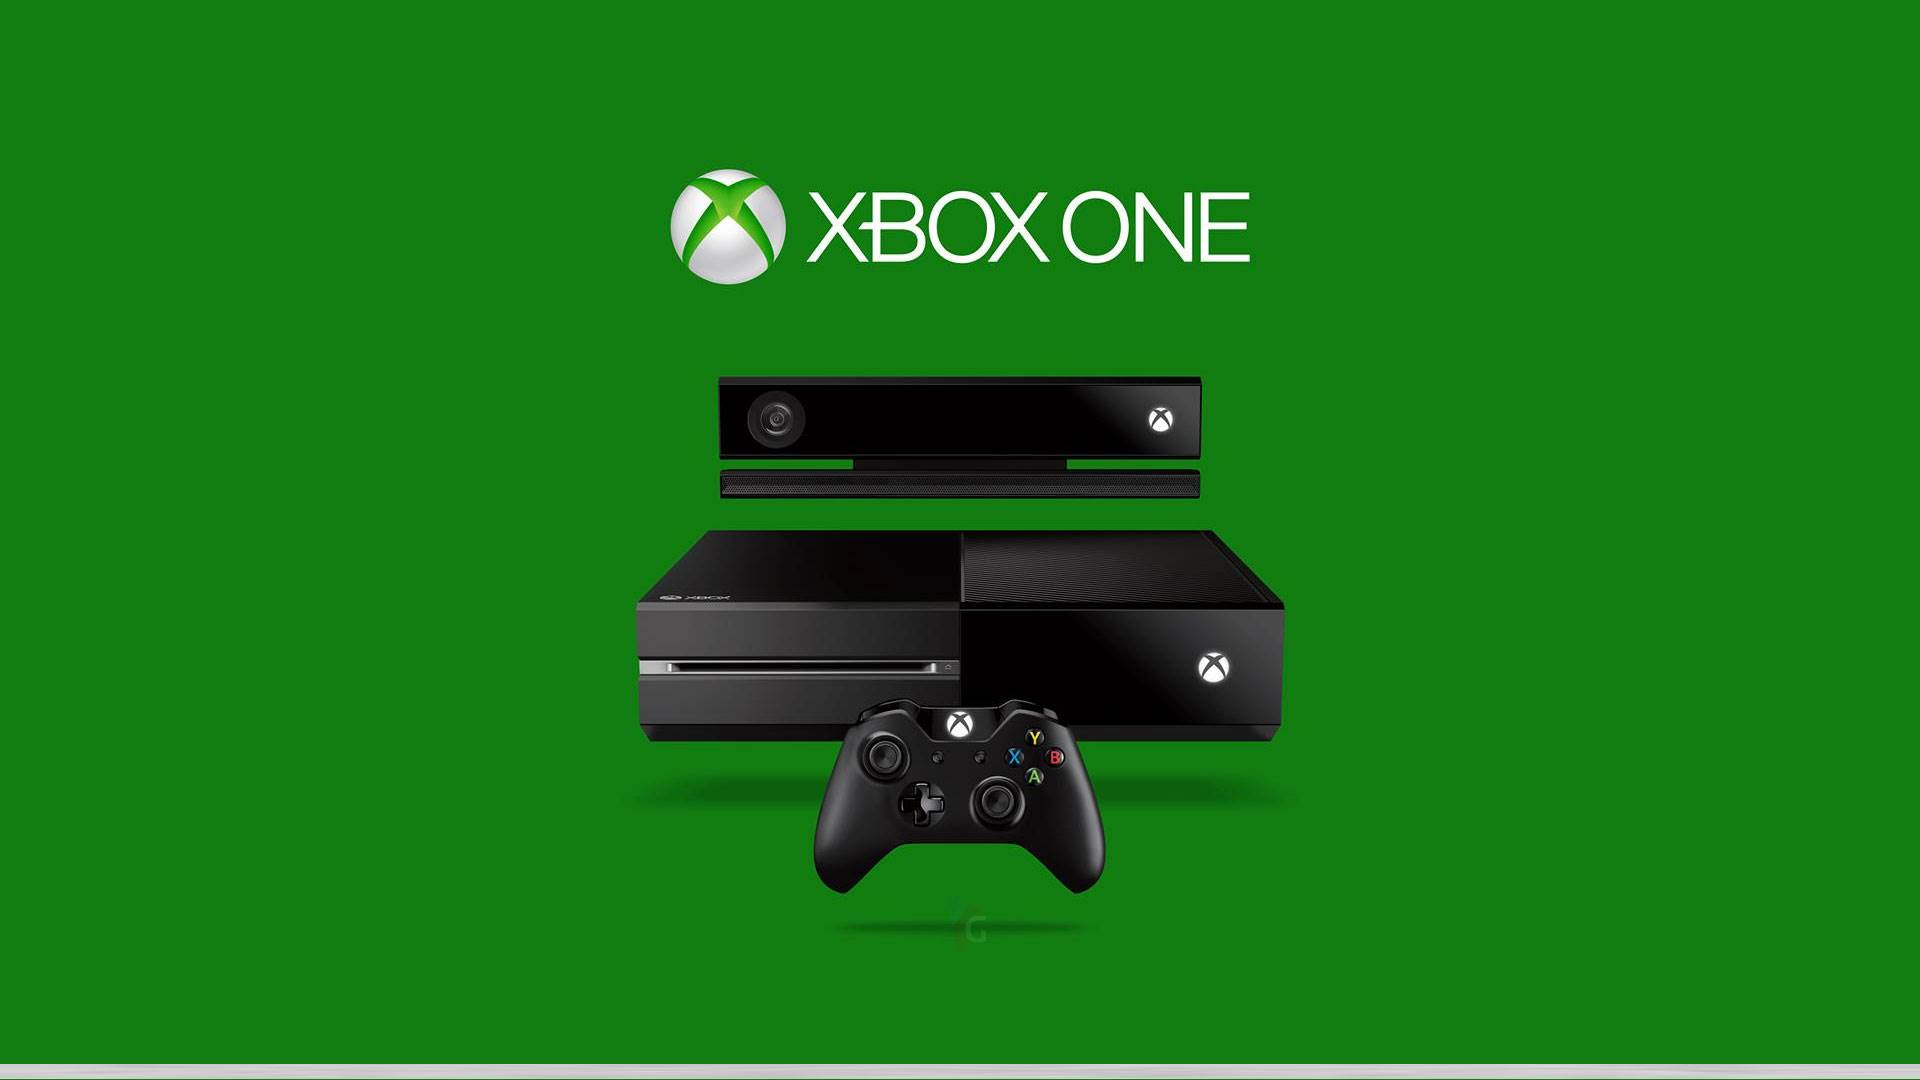 xbox one hd wallpaper